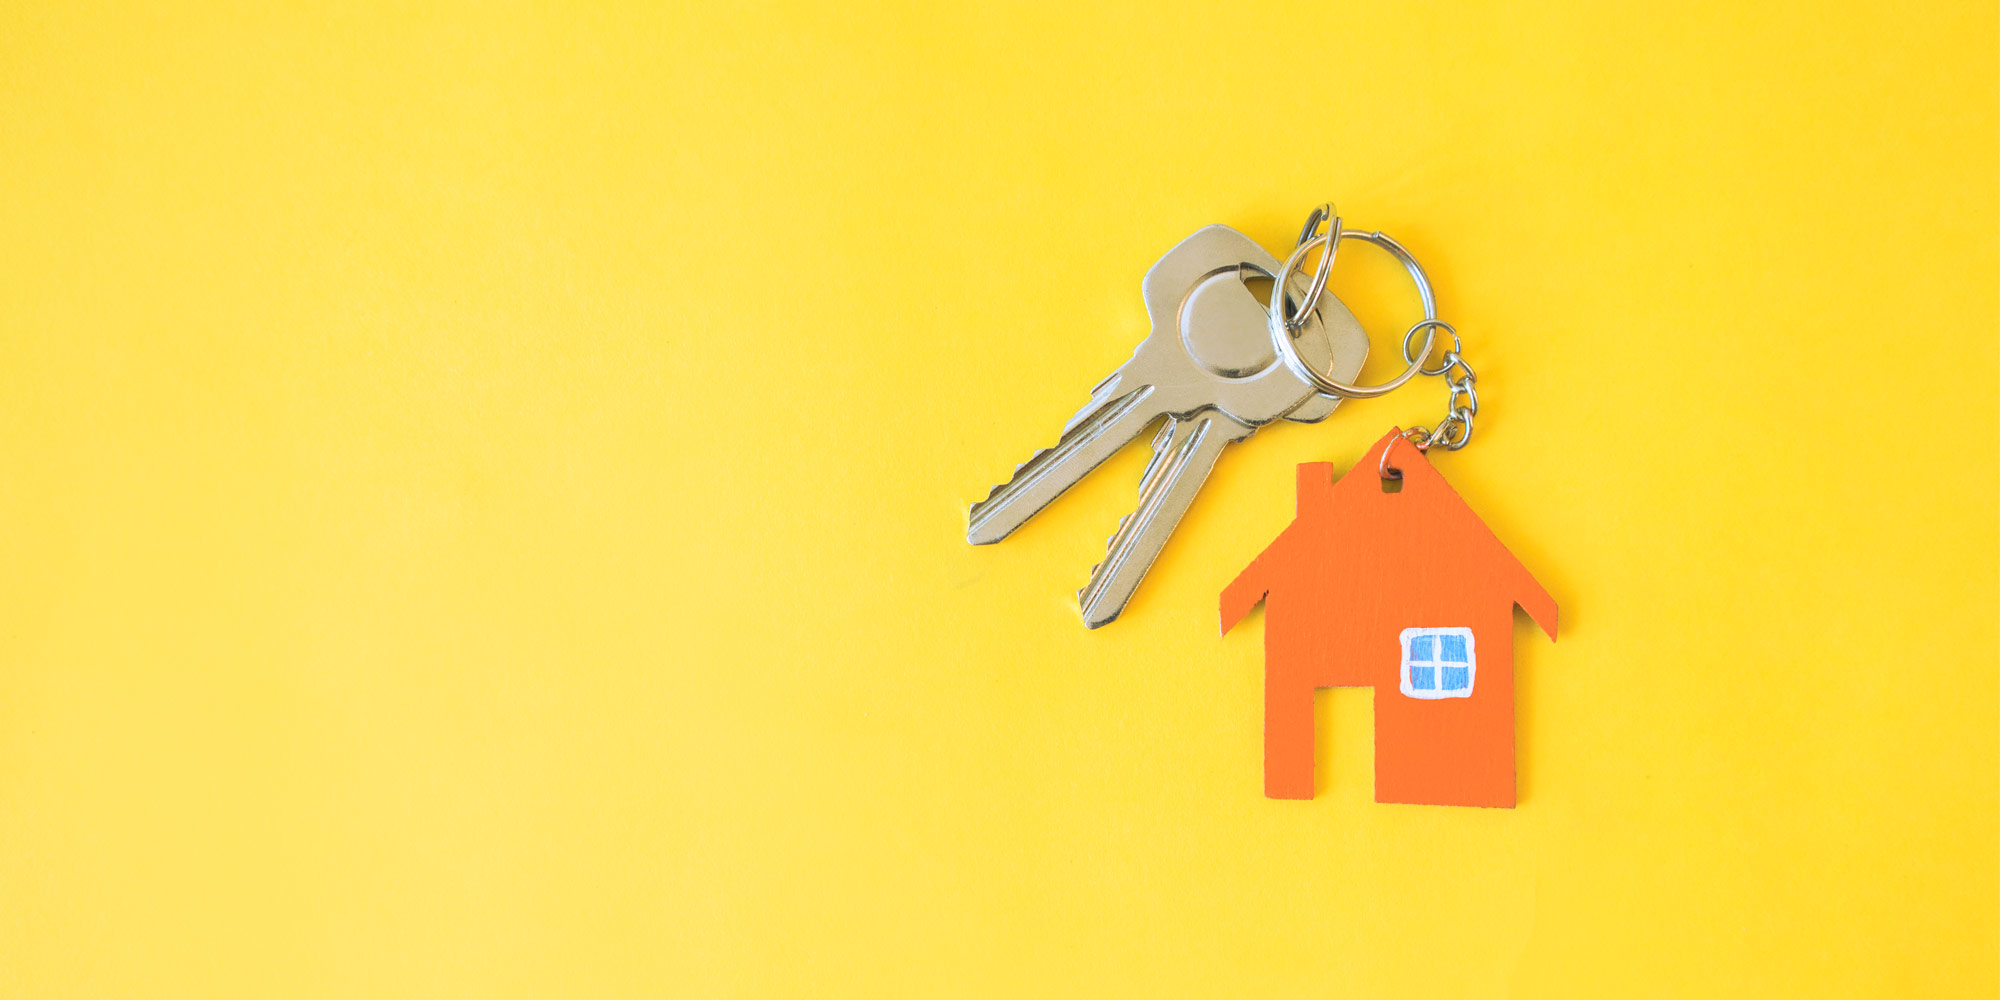 keys to house on bring yellow background